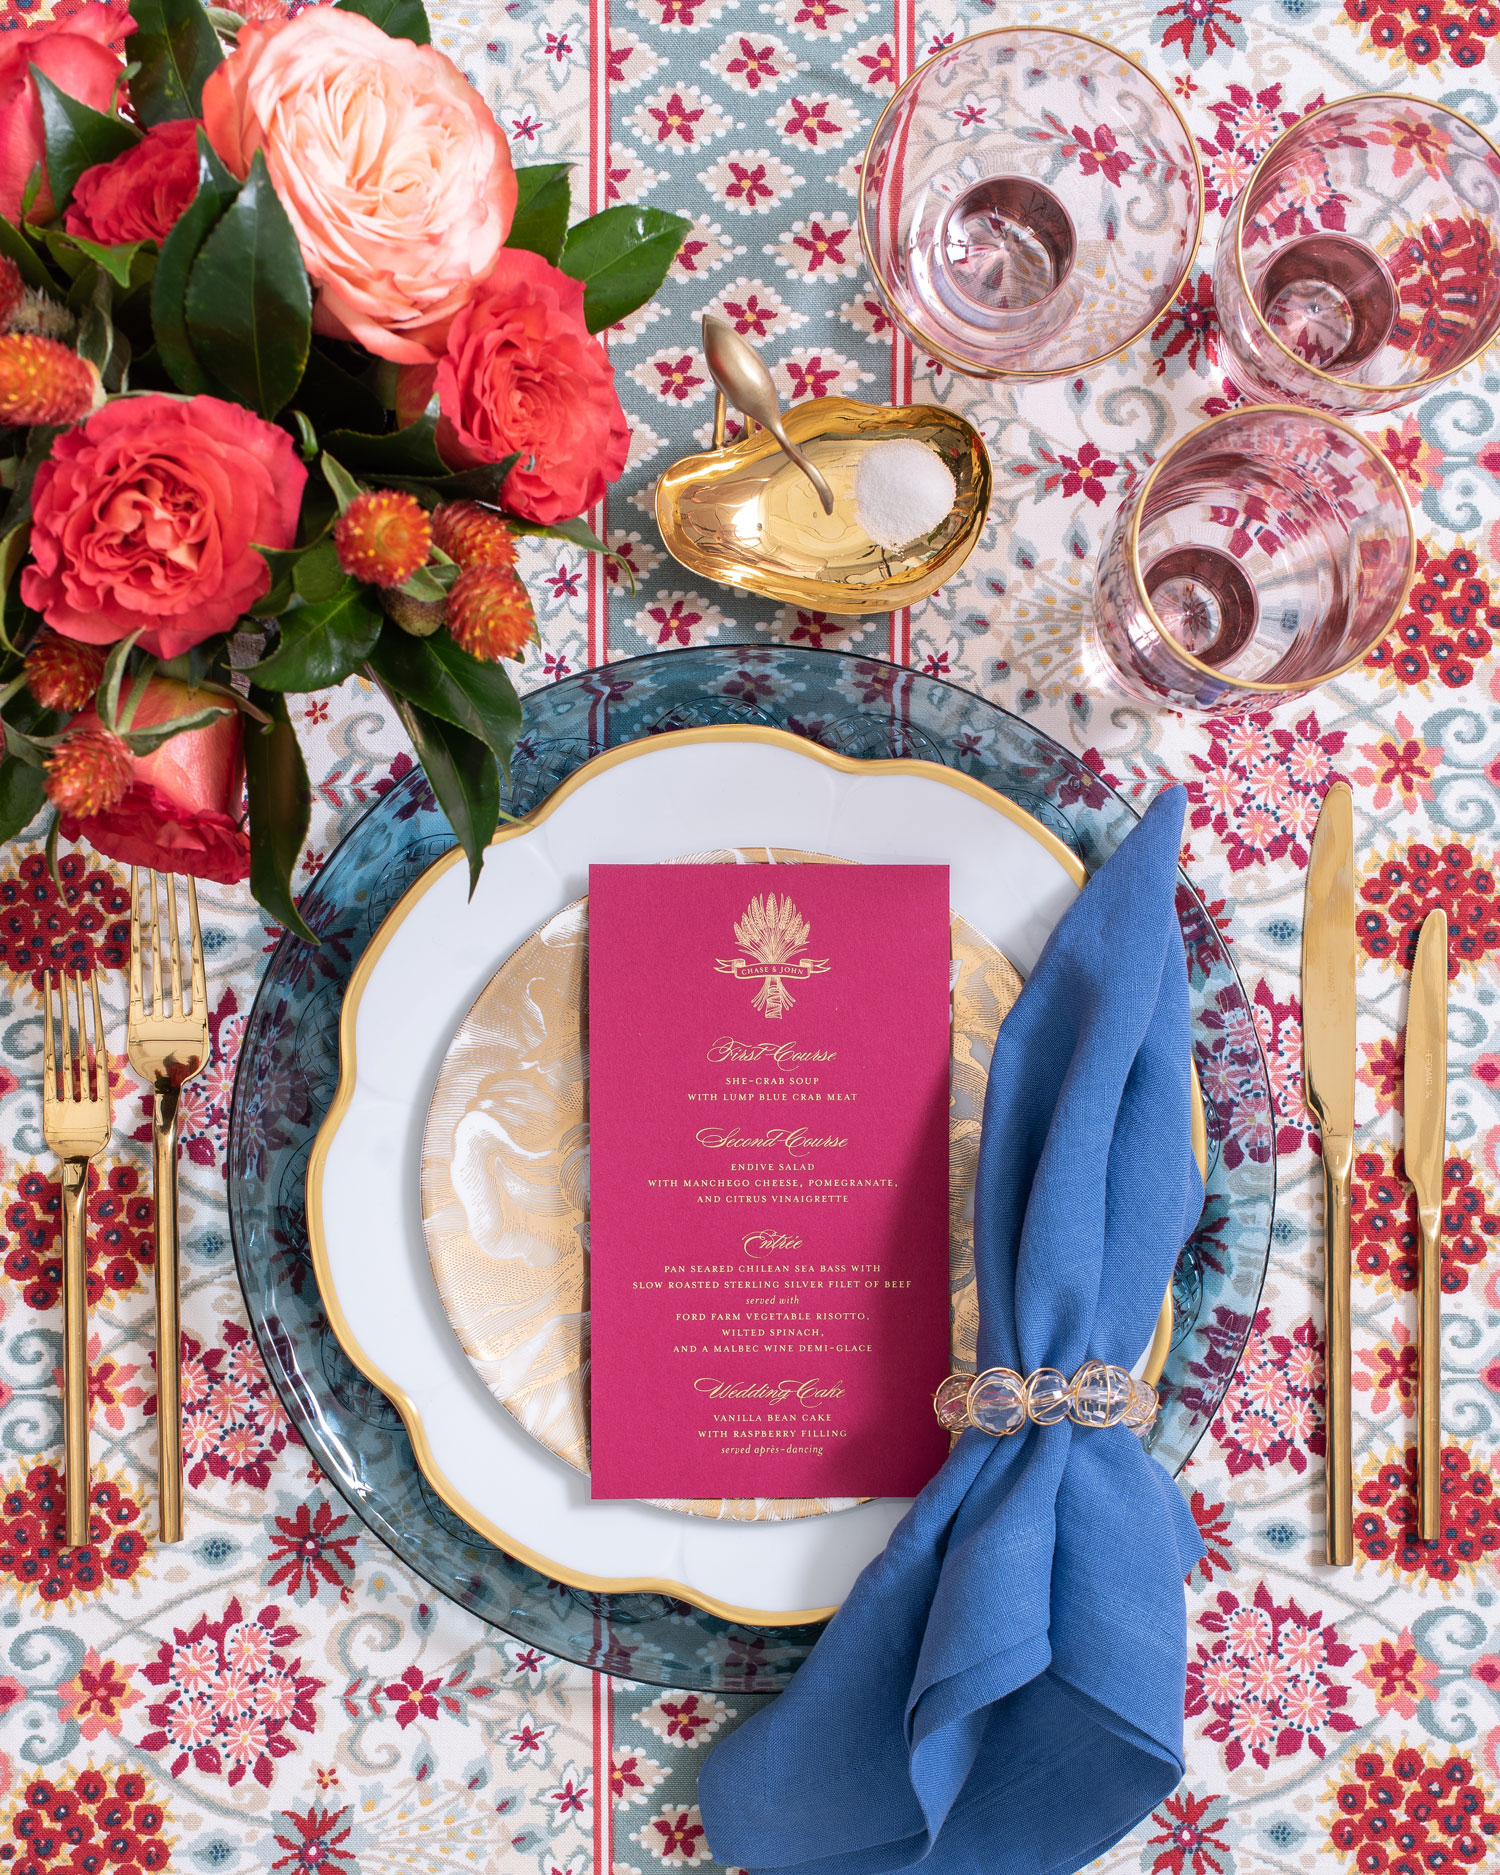 Maison de Carine tabletop company burgundy and blue luxury wedding place setting ideas